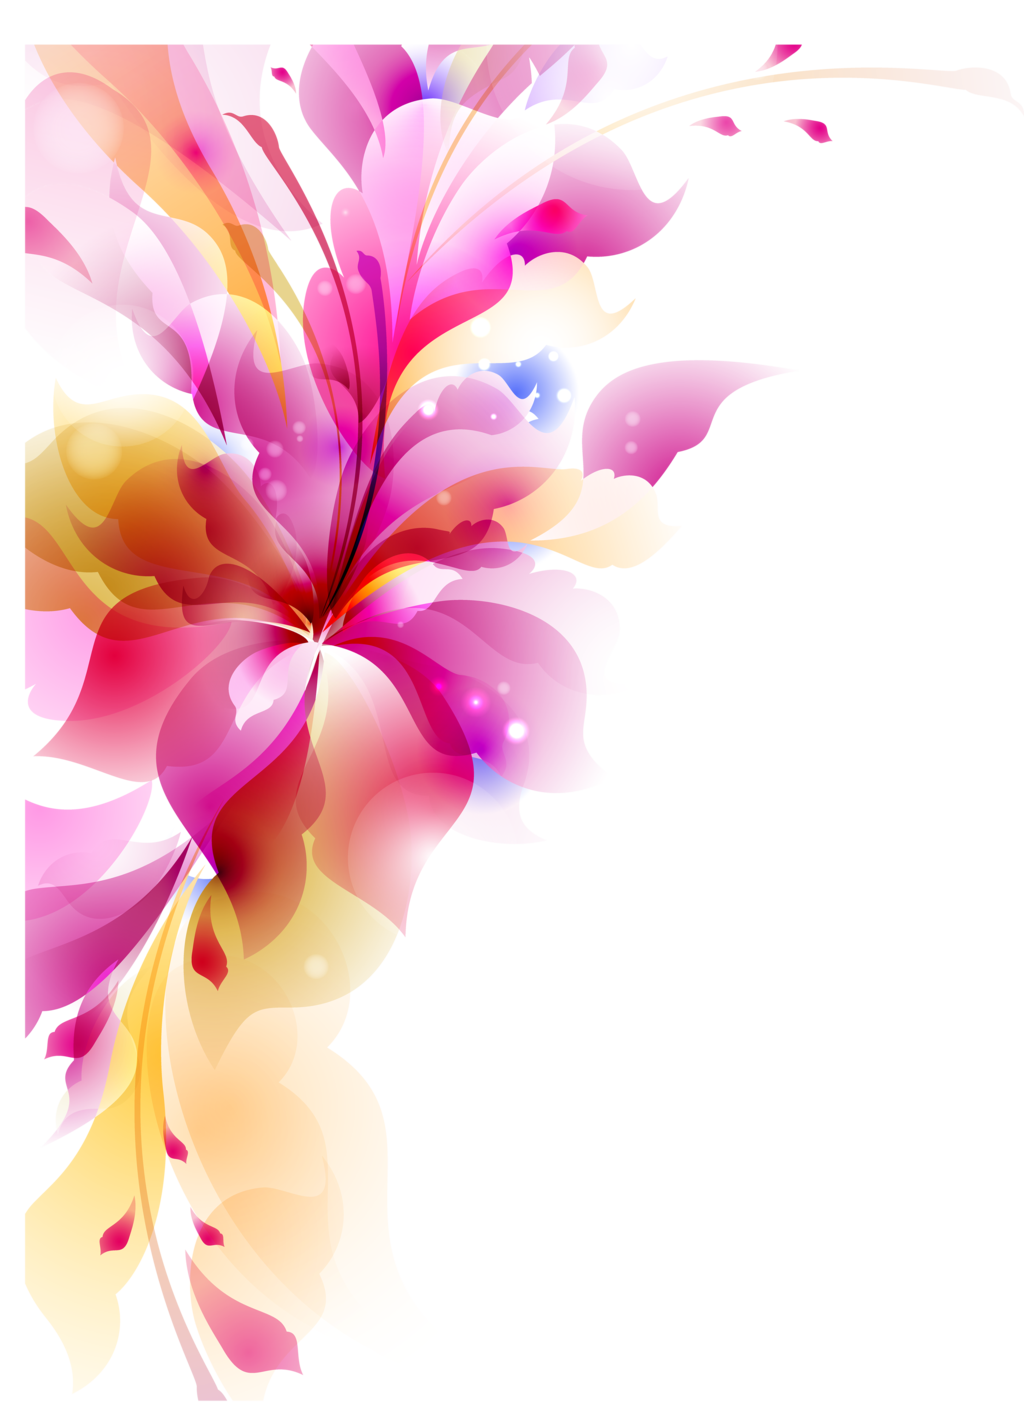 Flower Vector HQ PNG by cherryproductionsorg - Flowers Vectors PNG